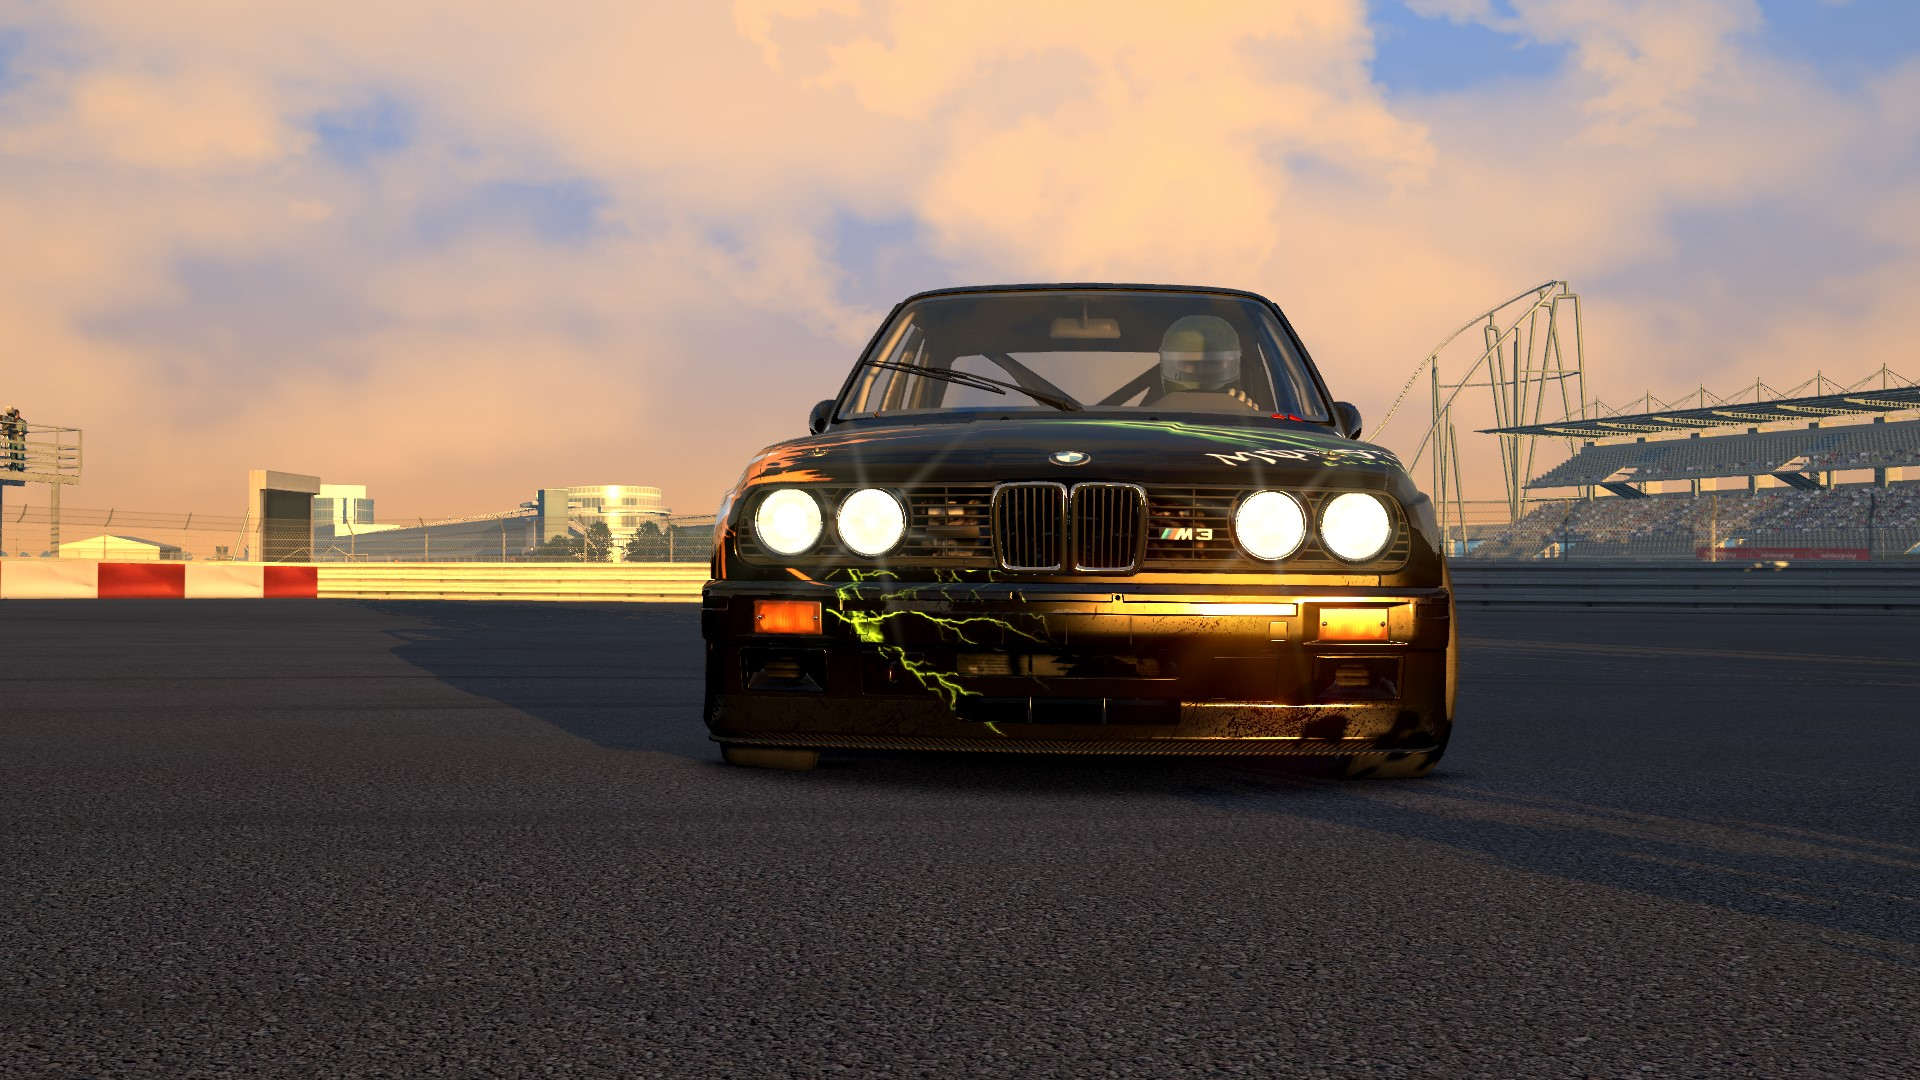 Screenshot_bmw_m3_e30_dtm_nurburgring_10-2-2015-19-28-57.jpg